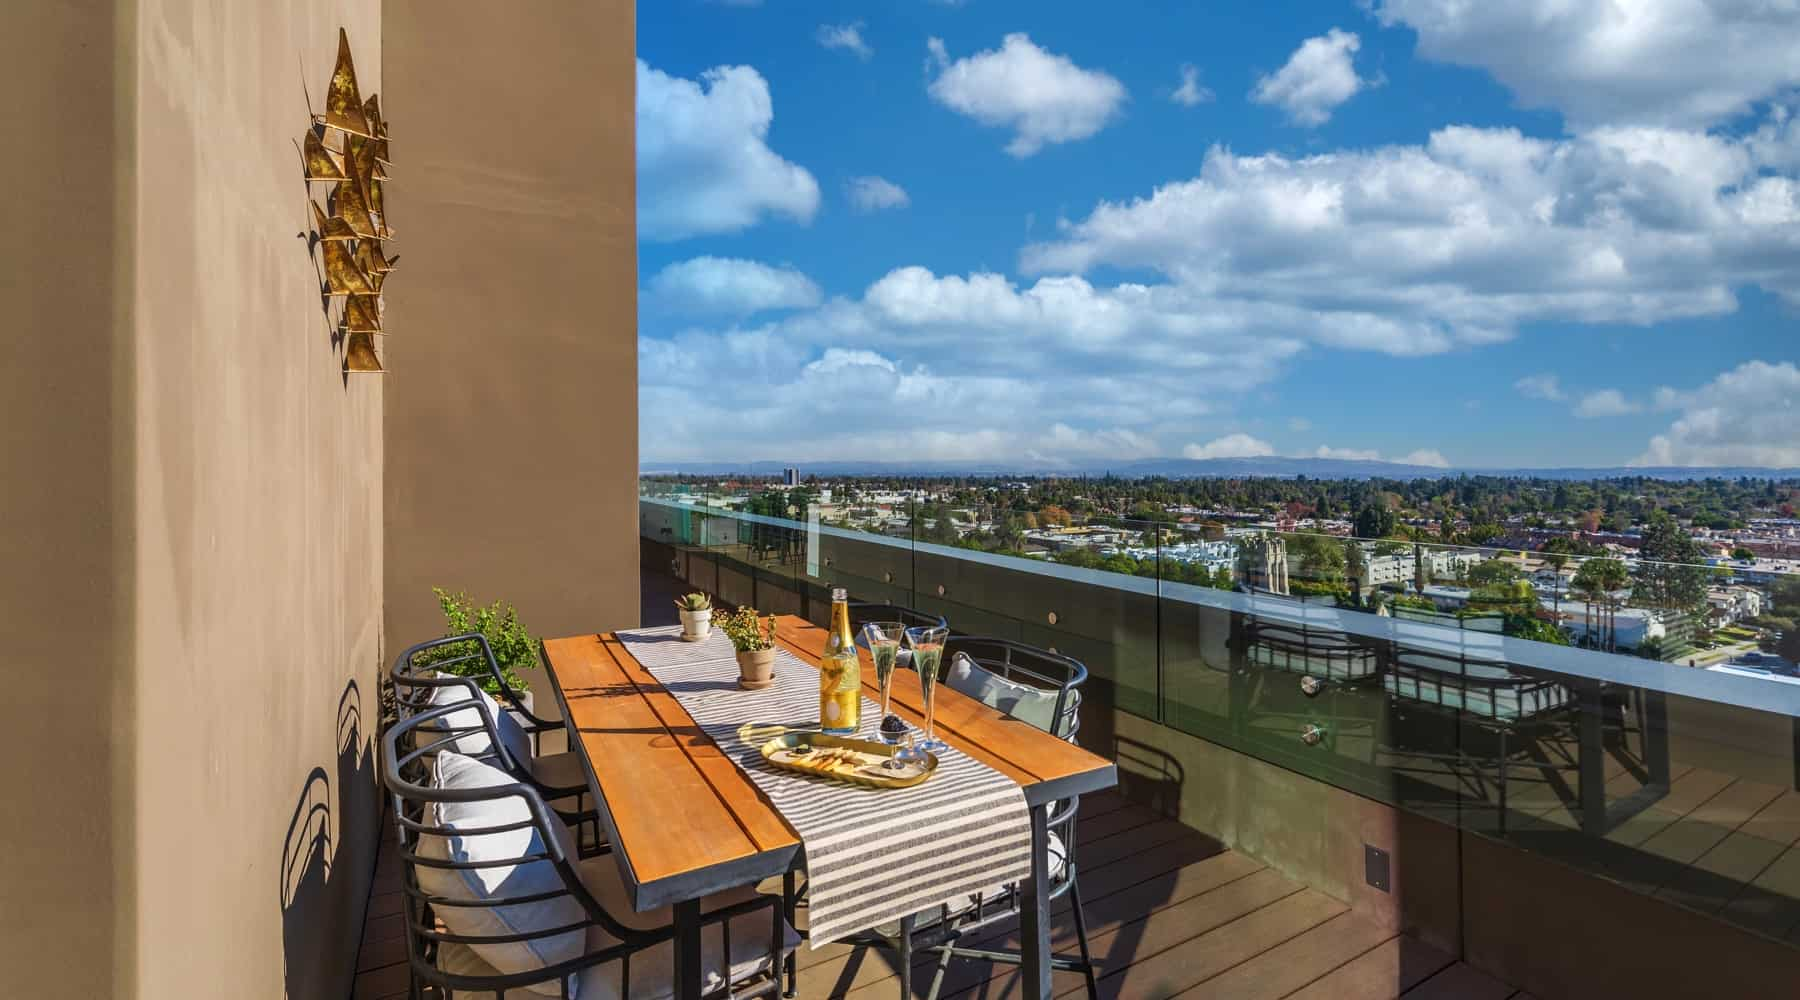 Penthouse_6_Deck_Table_View_Sky